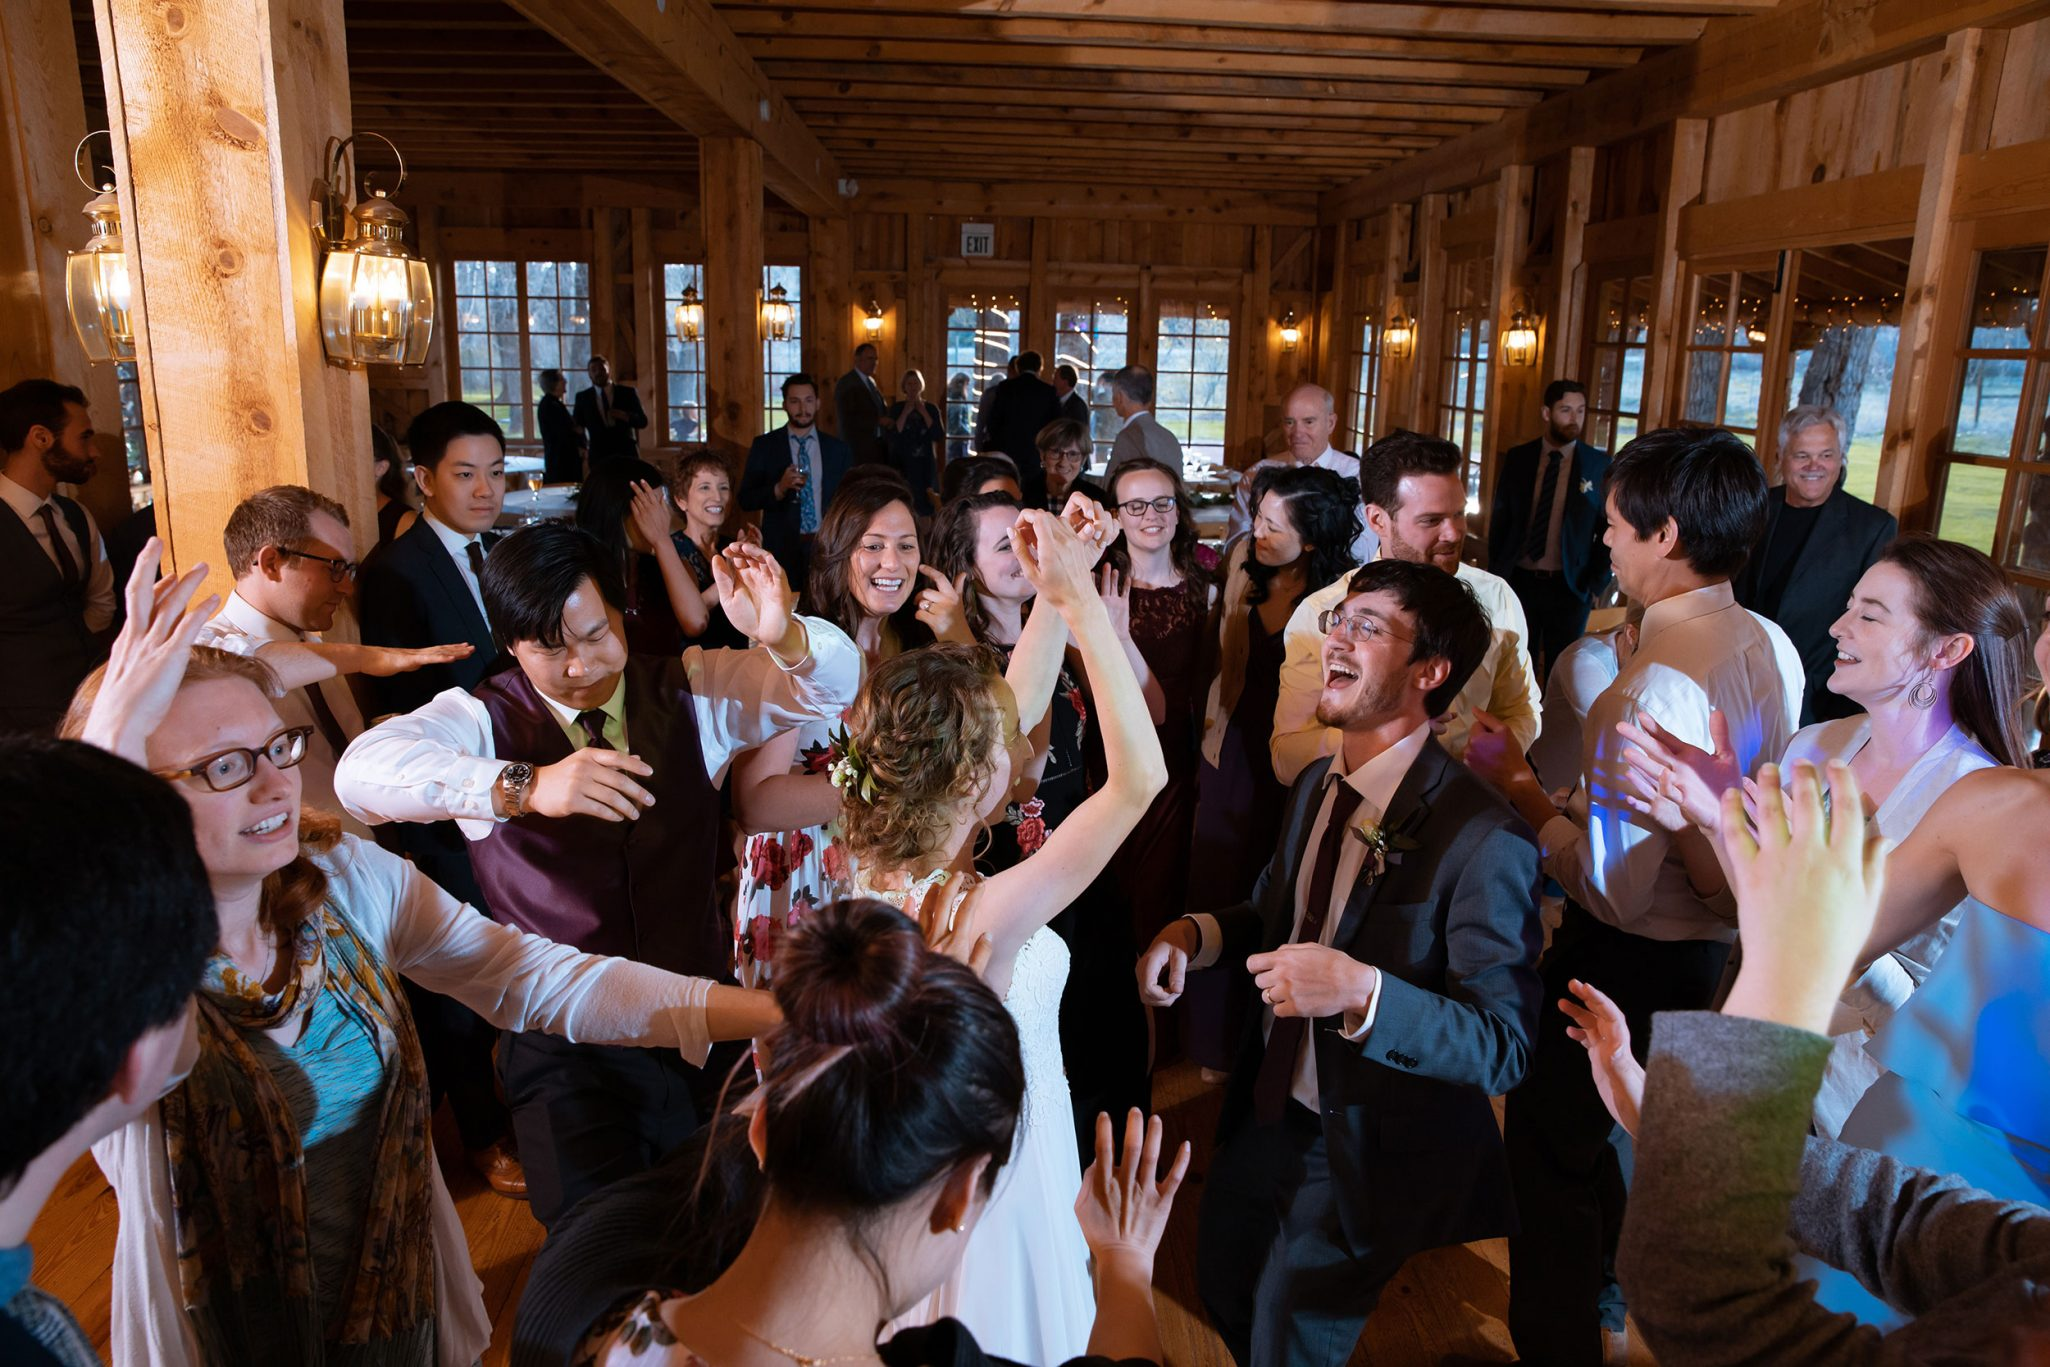 Reception dance party at Ridgewood Event Center by Kara Cavalca